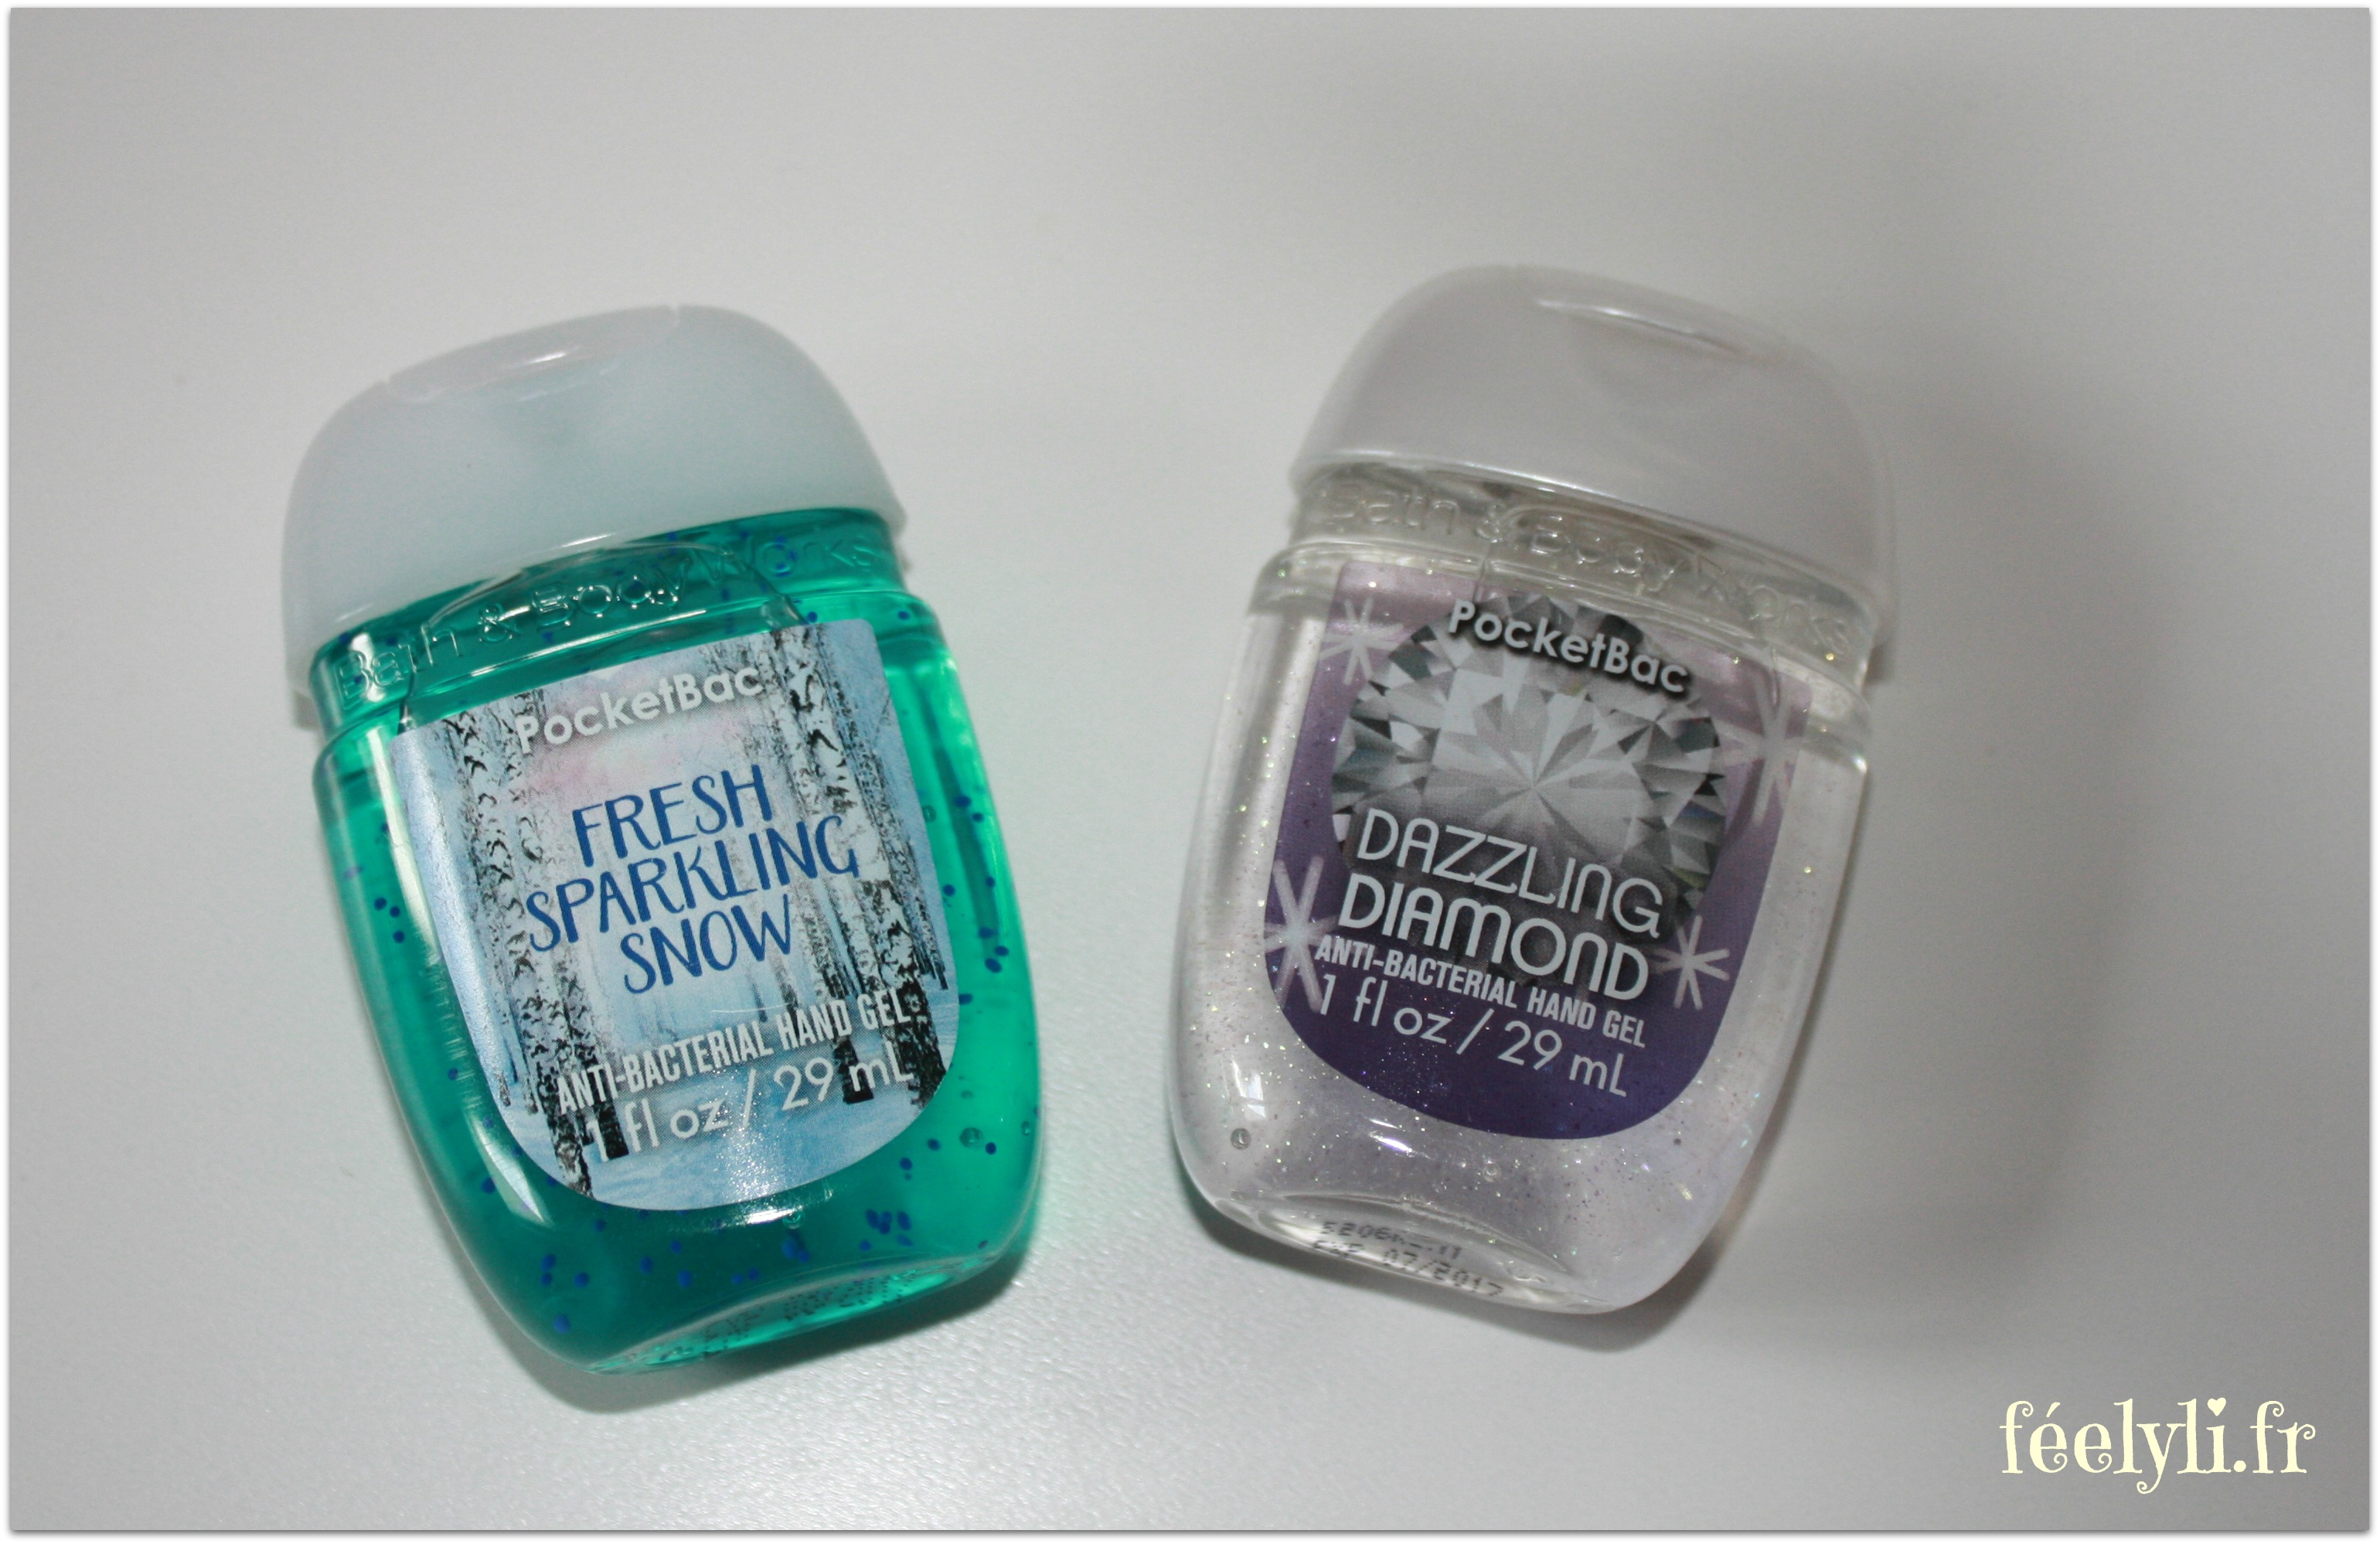 pocketbac bath and body works